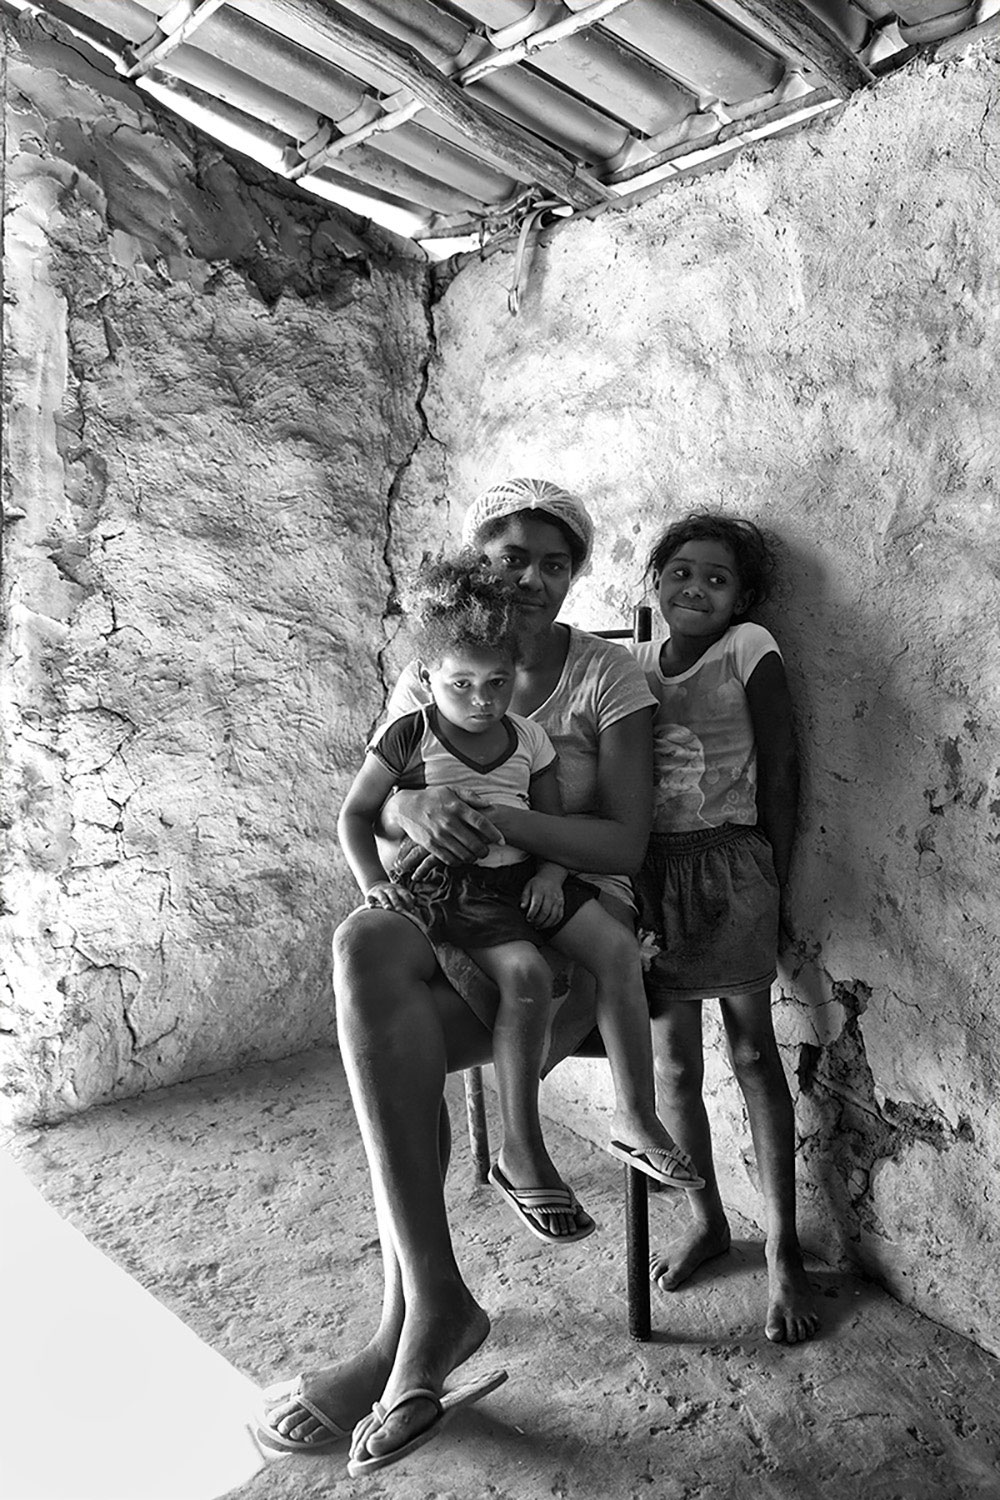 Arlete and her kids, Tamboril indigenous village